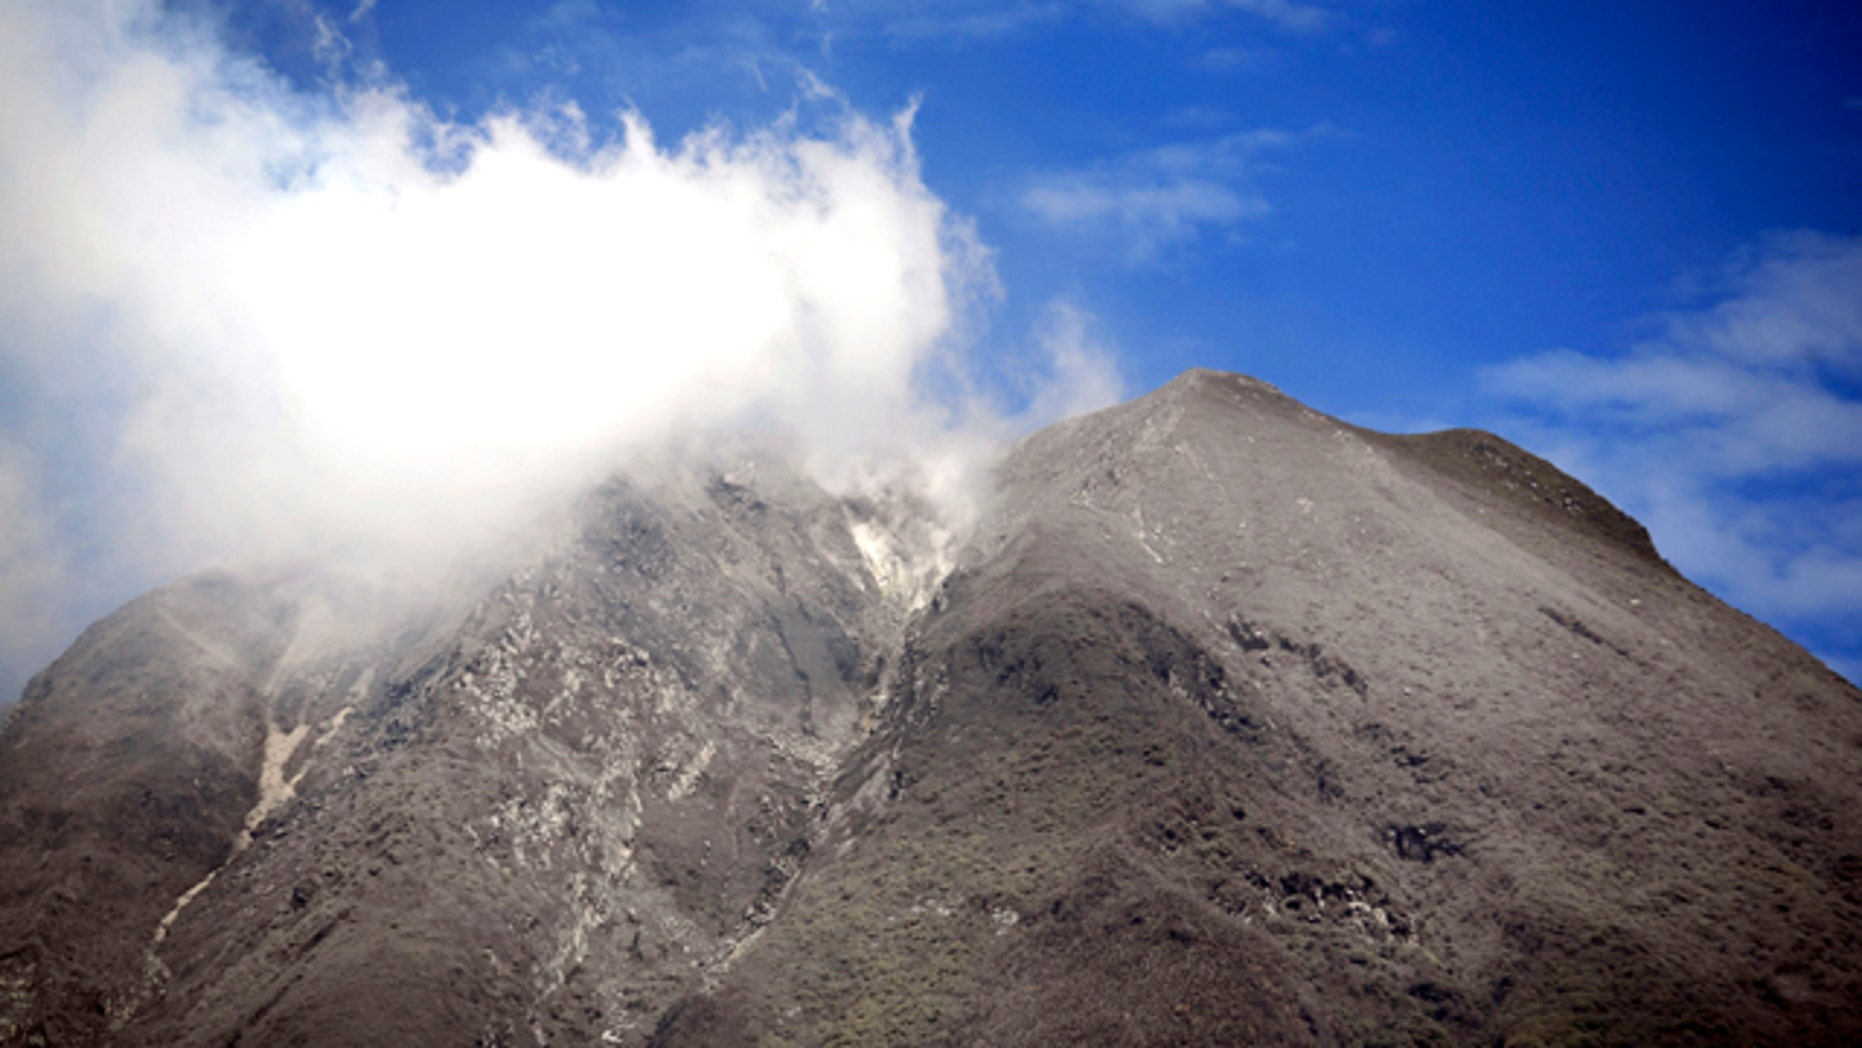 Mount Sinabung spews volcanic smoke as seen from Tanah Karo, North Sumatra, Indonesia, Tuesday, Sept. 7, 2010. The volcano shot volcanic ash high into the air Tuesday, dusting villages 15 miles (25 kilometers) away in its most powerful eruption since awakening last week from four centuries of dormancy.